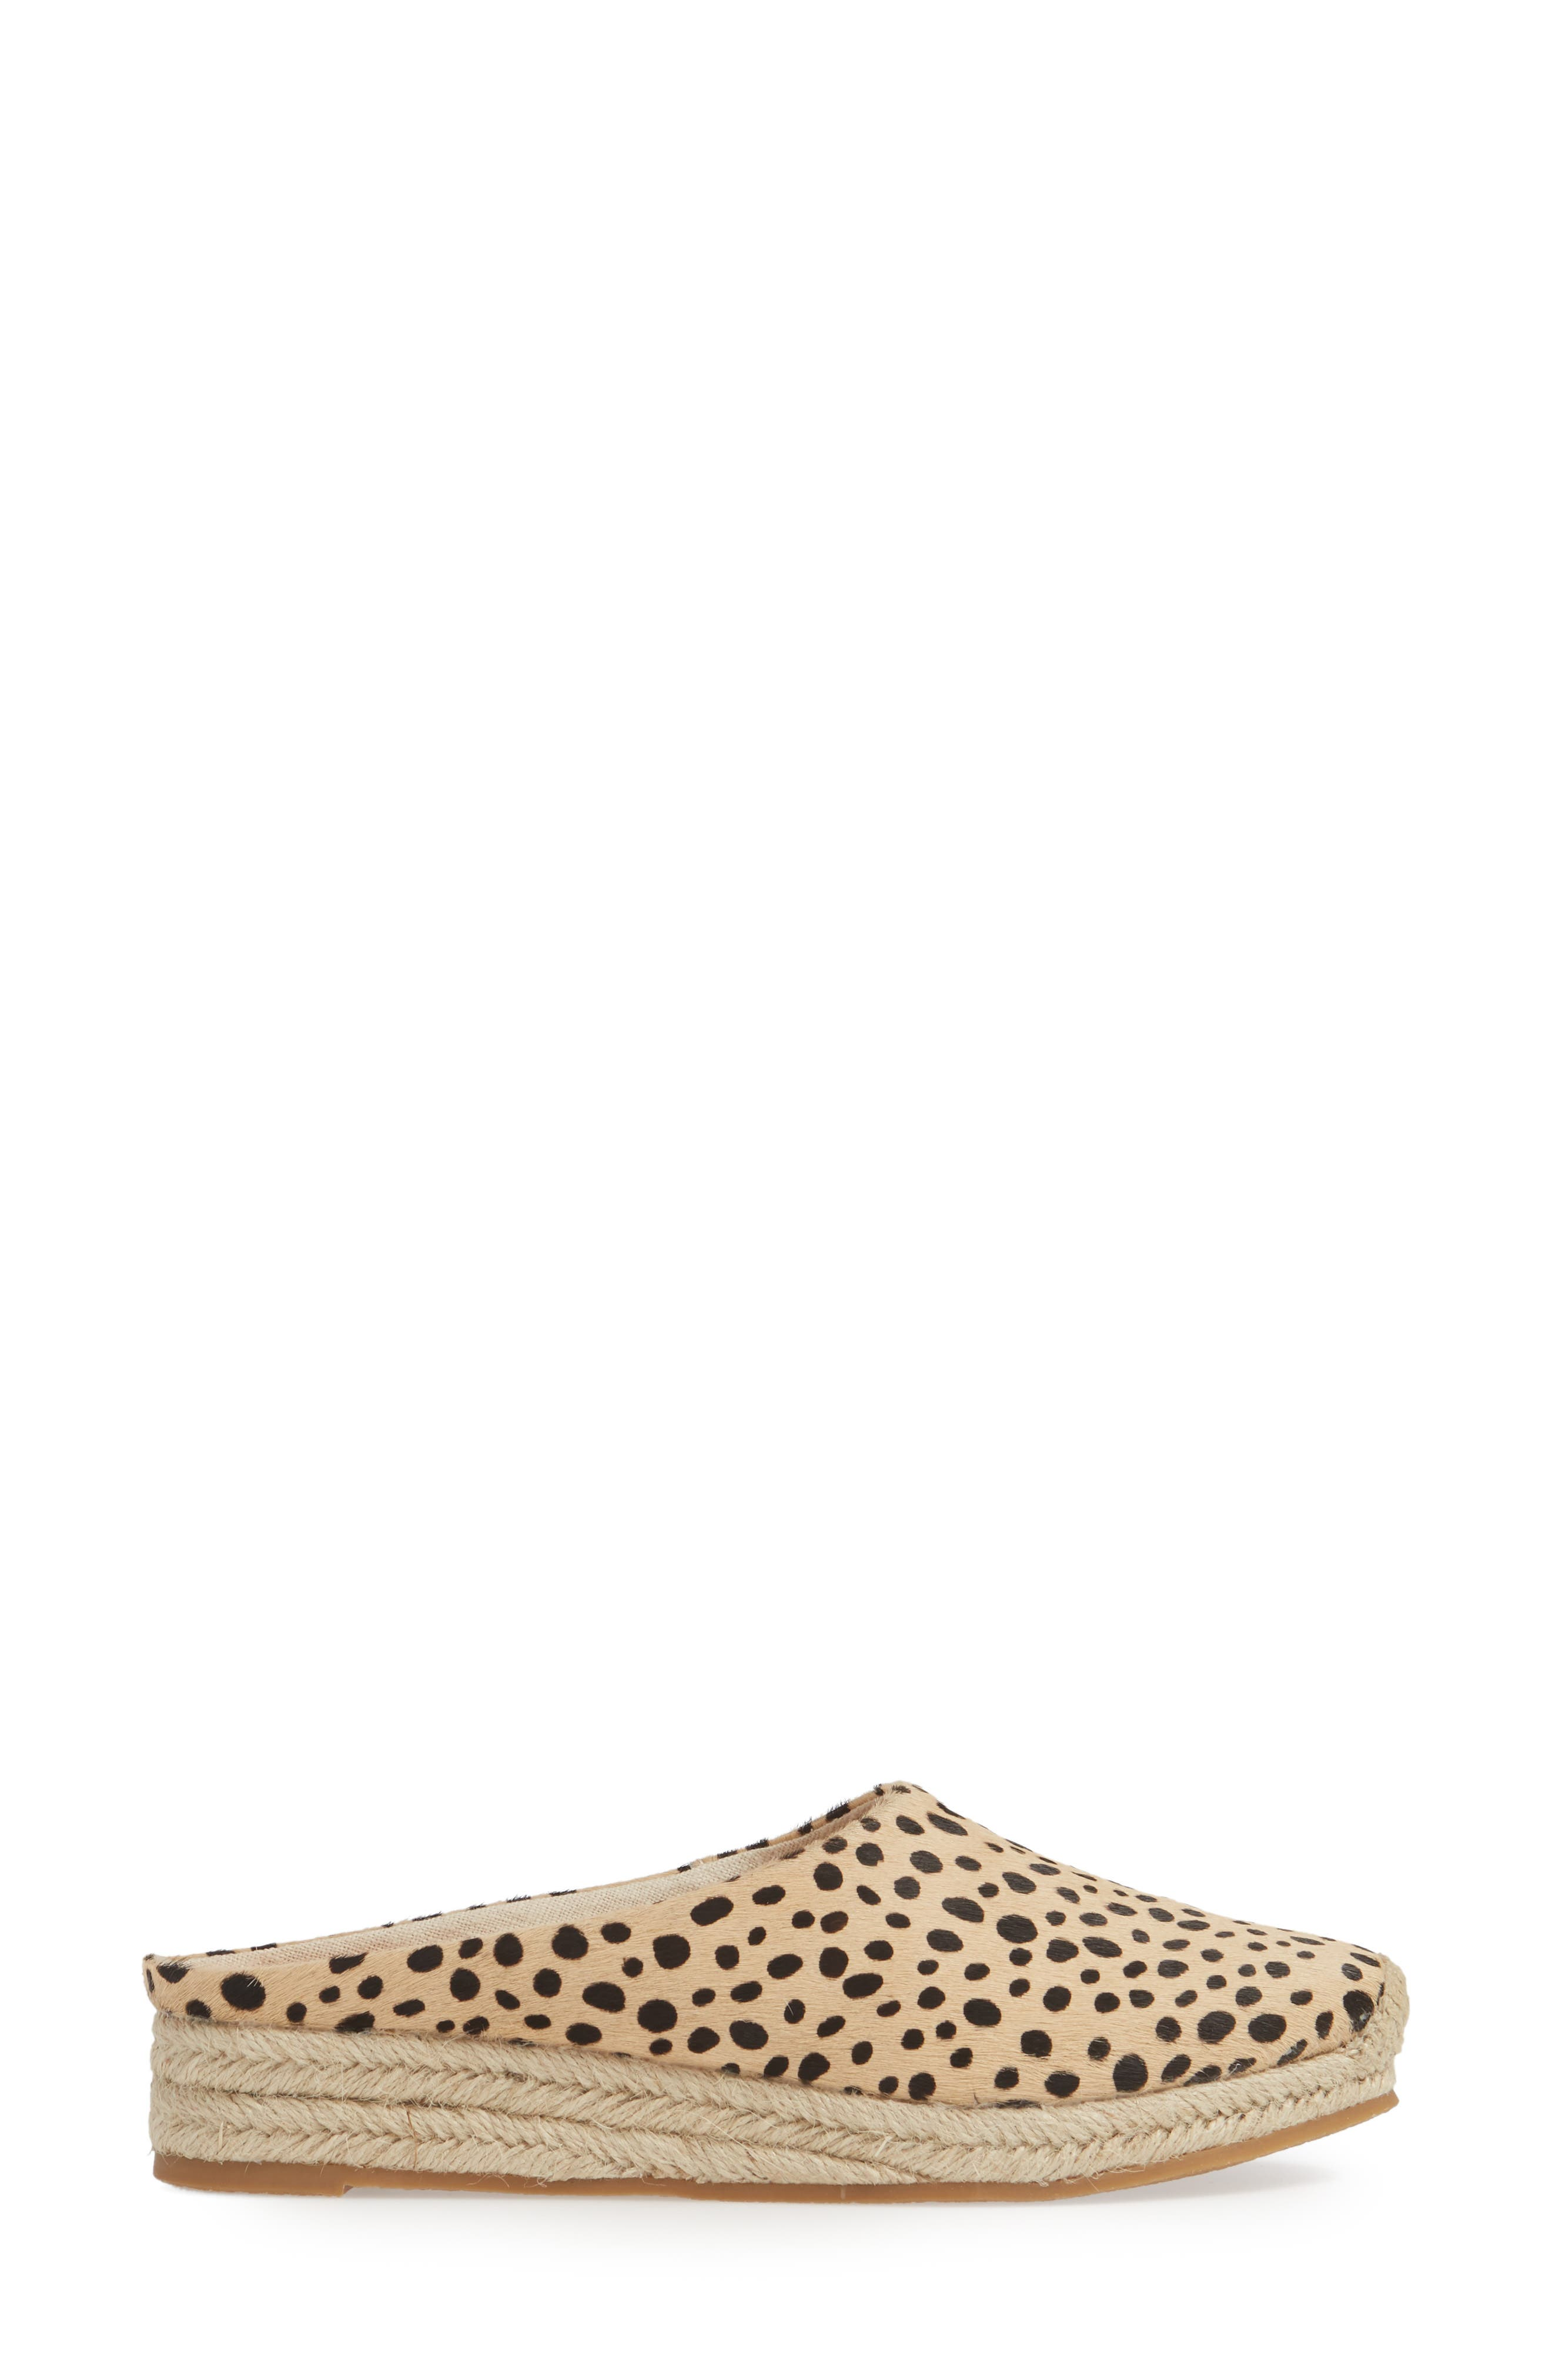 DOLCE VITA, Brandi Genuine Calf Hair Espadrille Mule, Alternate thumbnail 3, color, LEOPARD PRINT CALF HAIR